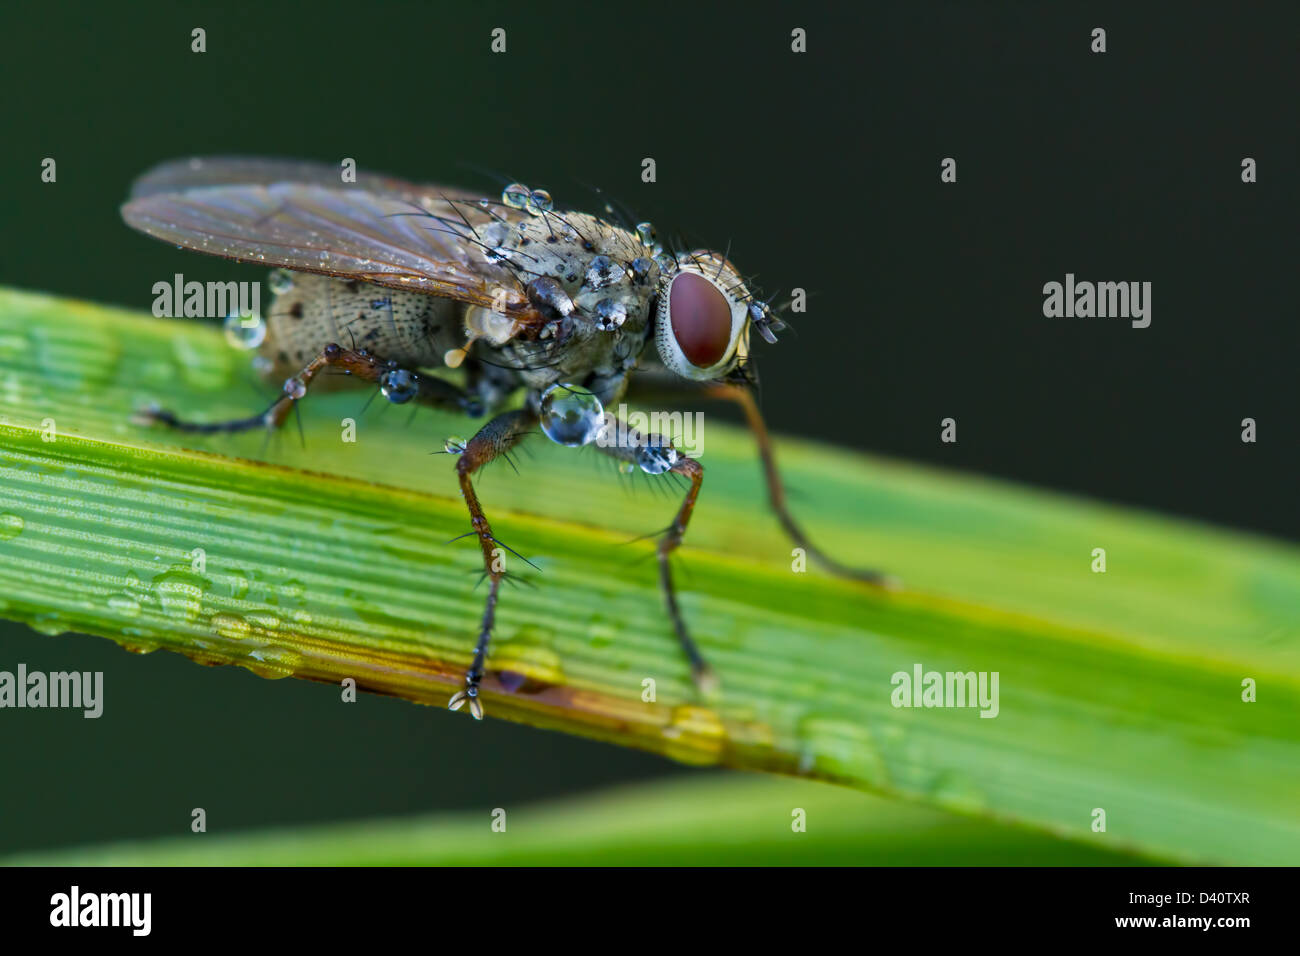 Macro photography of Tachinid fly perched on a green leaf with morning dew drops Stock Photo